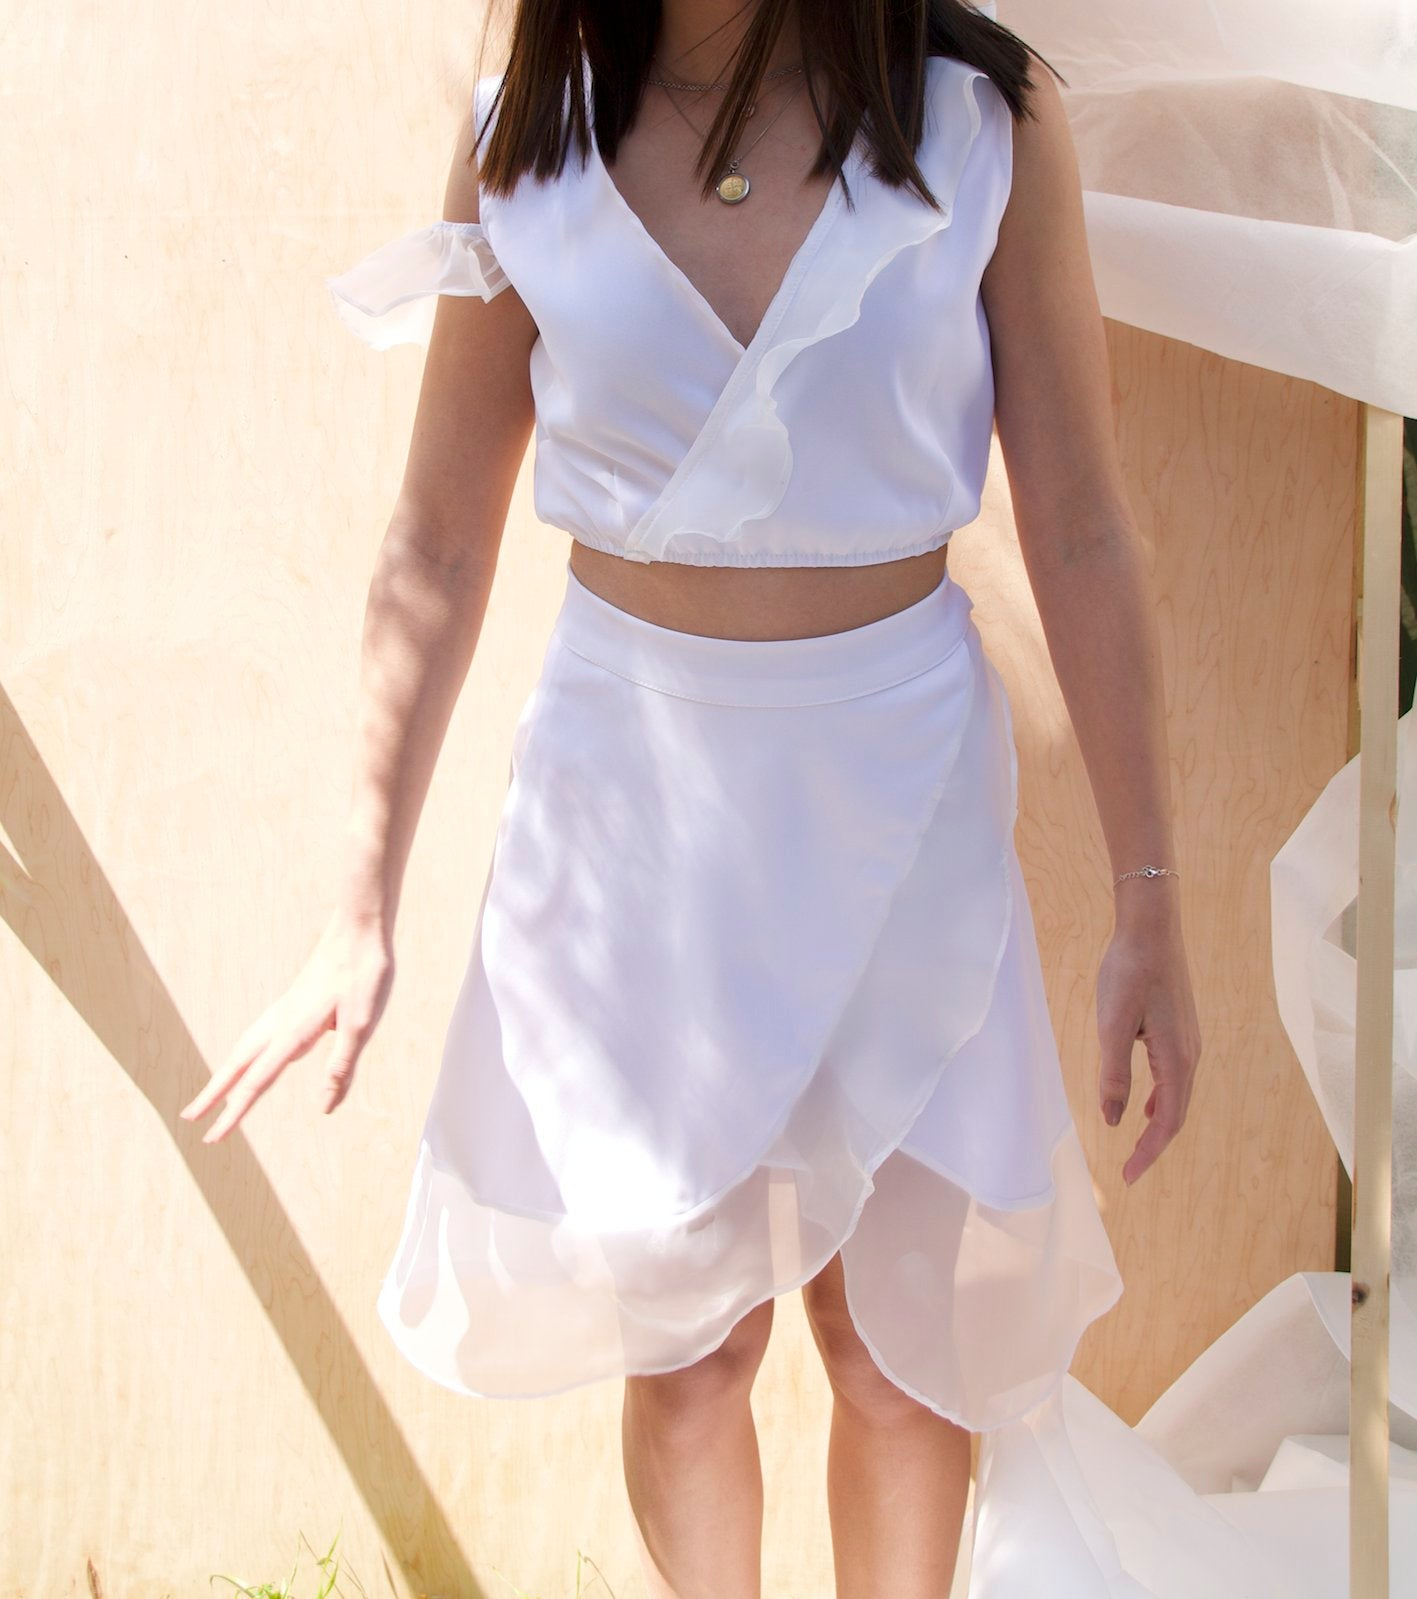 The white skirt